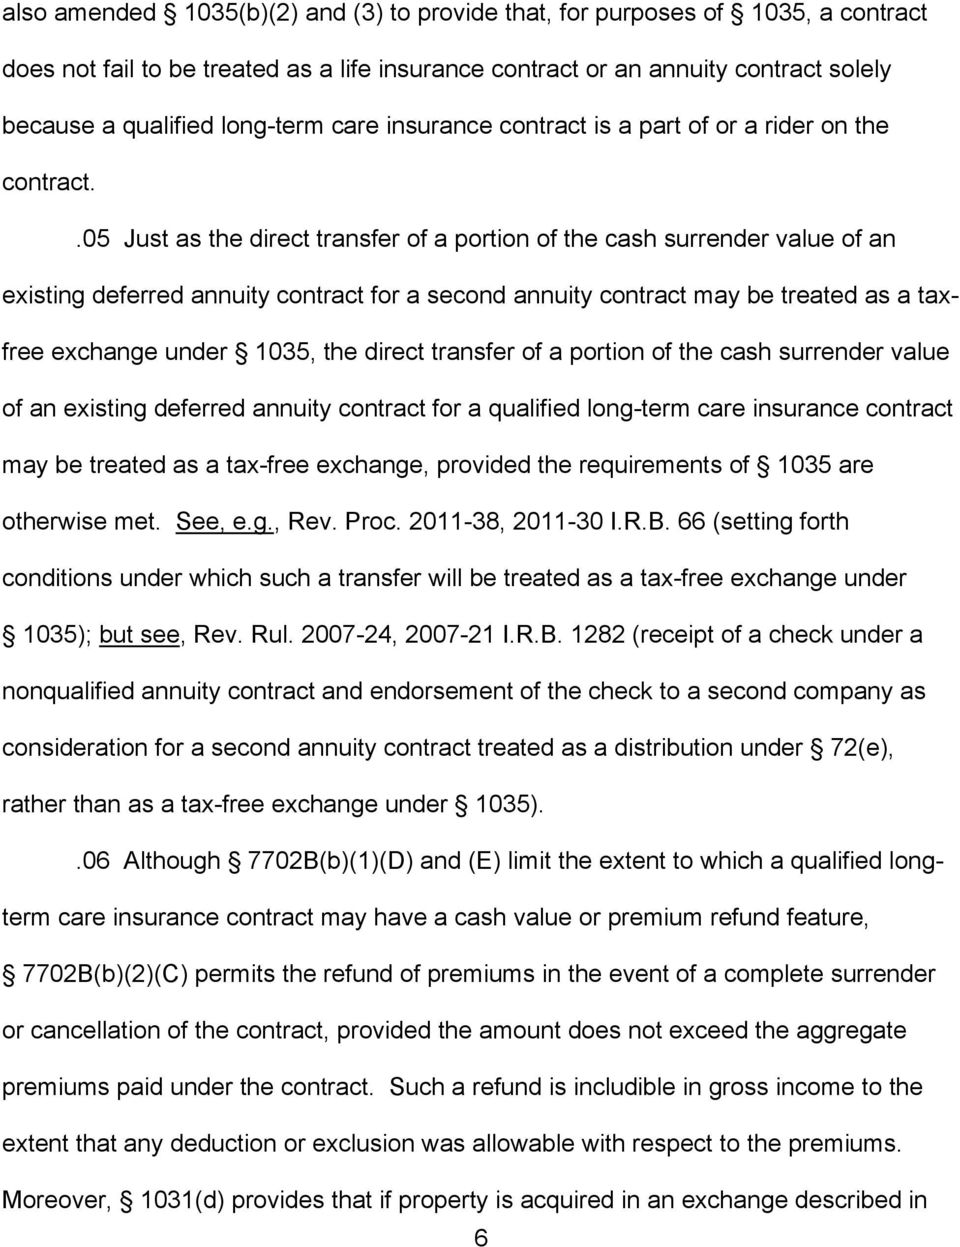 .05 Just as the direct transfer of a portion of the cash surrender value of an existing deferred annuity contract for a second annuity contract may be treated as a taxfree exchange under 1035, the